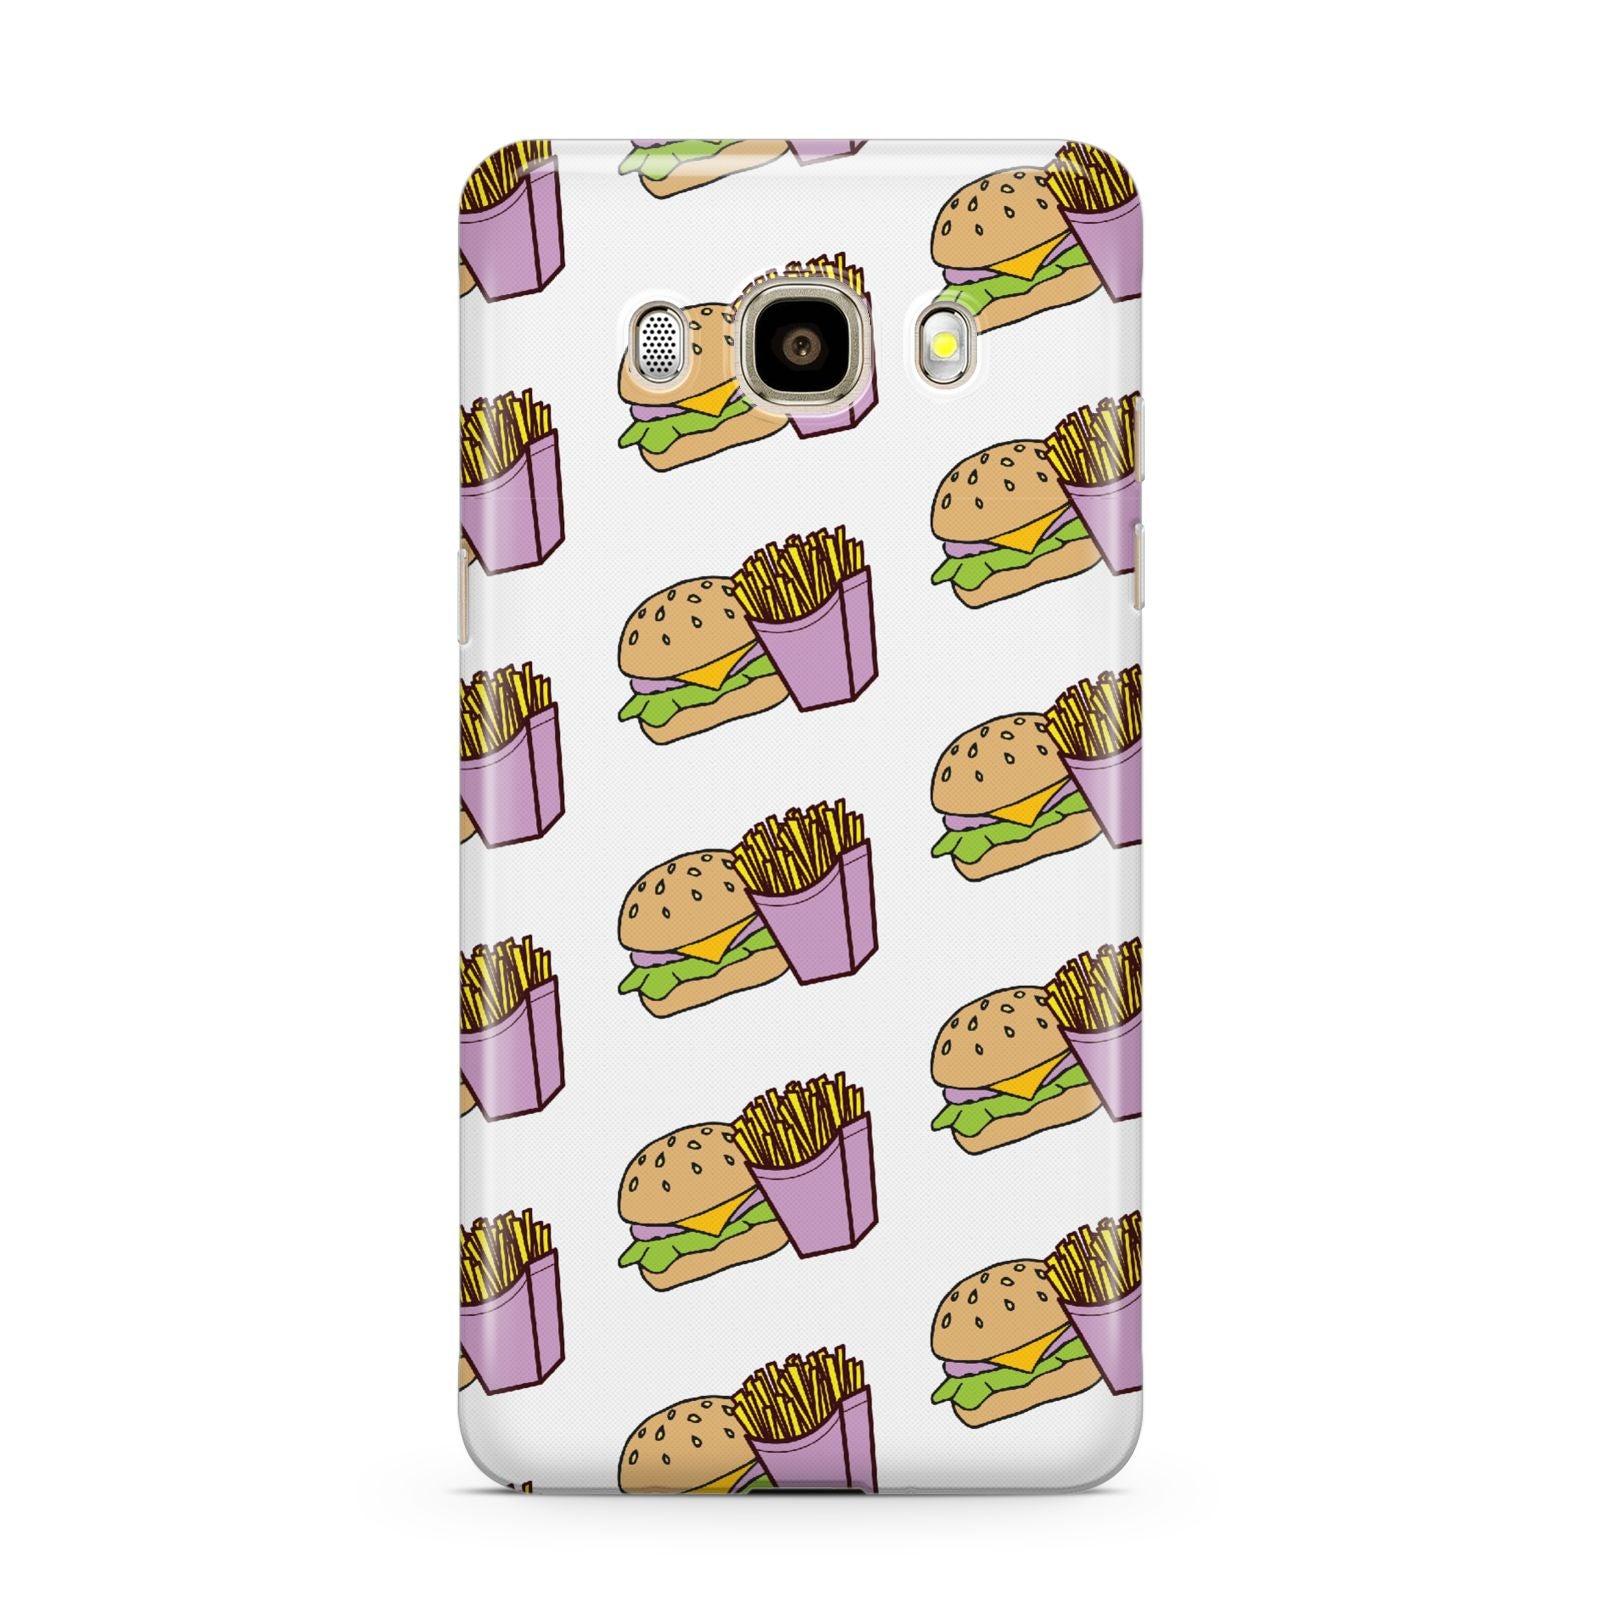 Burger Fries Fast Food Samsung Galaxy J7 2016 Case on gold phone